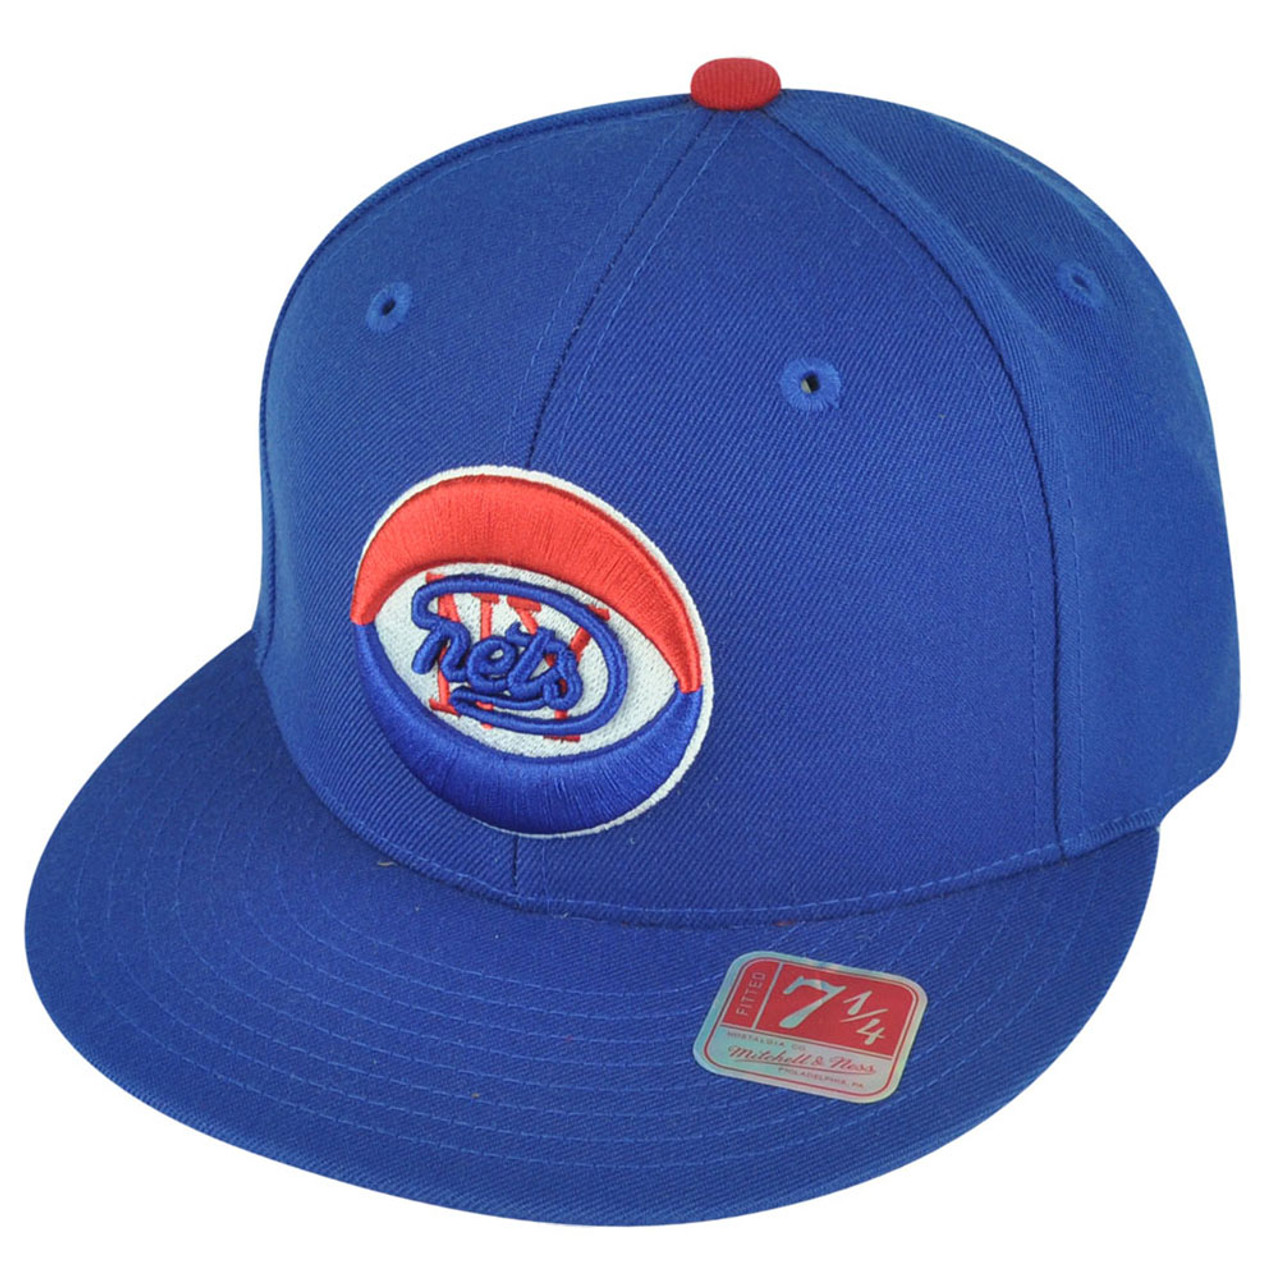 88f11984 ABA Mitchell Ness TK07 New York Nets Team Second Fitted Flat Bill Hat Cap